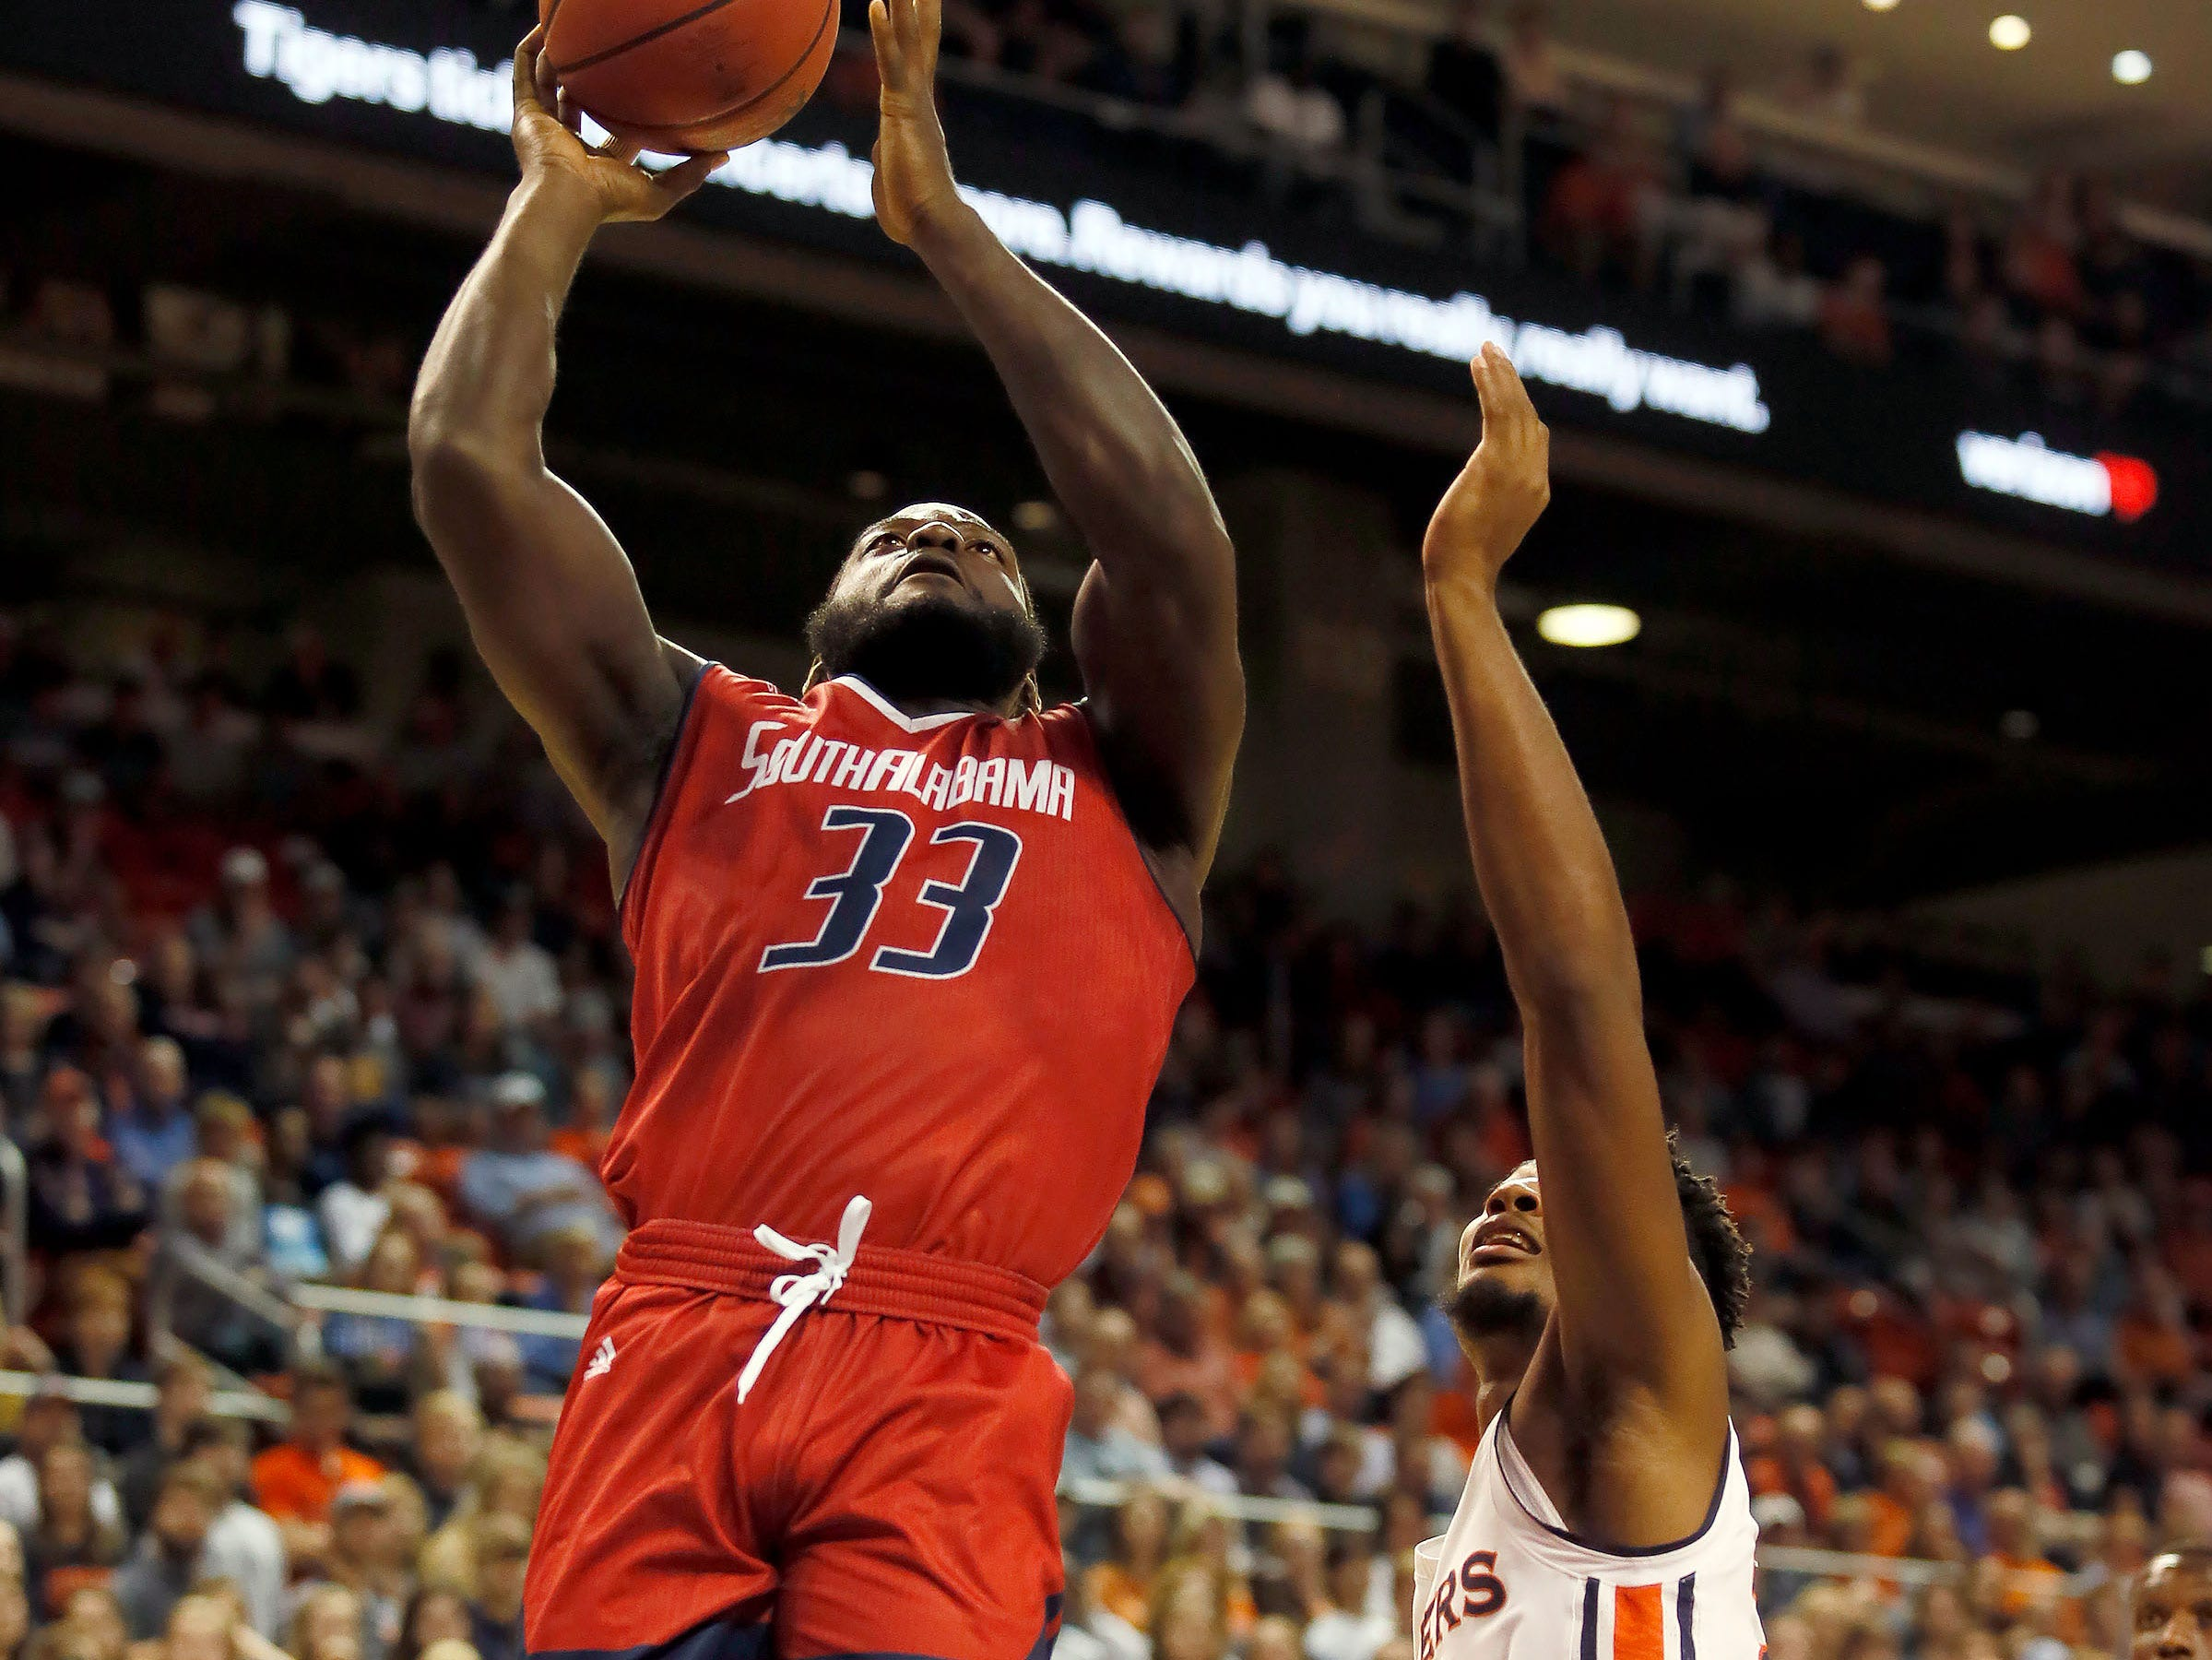 Nov 6, 2018; Auburn, AL, USA; South Alabama Jaguars forward Josh Ajayi (33) takes a shot over Auburn Tigers forward Anfernee McLemore (24) during the first half at Auburn Arena. Mandatory Credit: John Reed-USA TODAY Sports